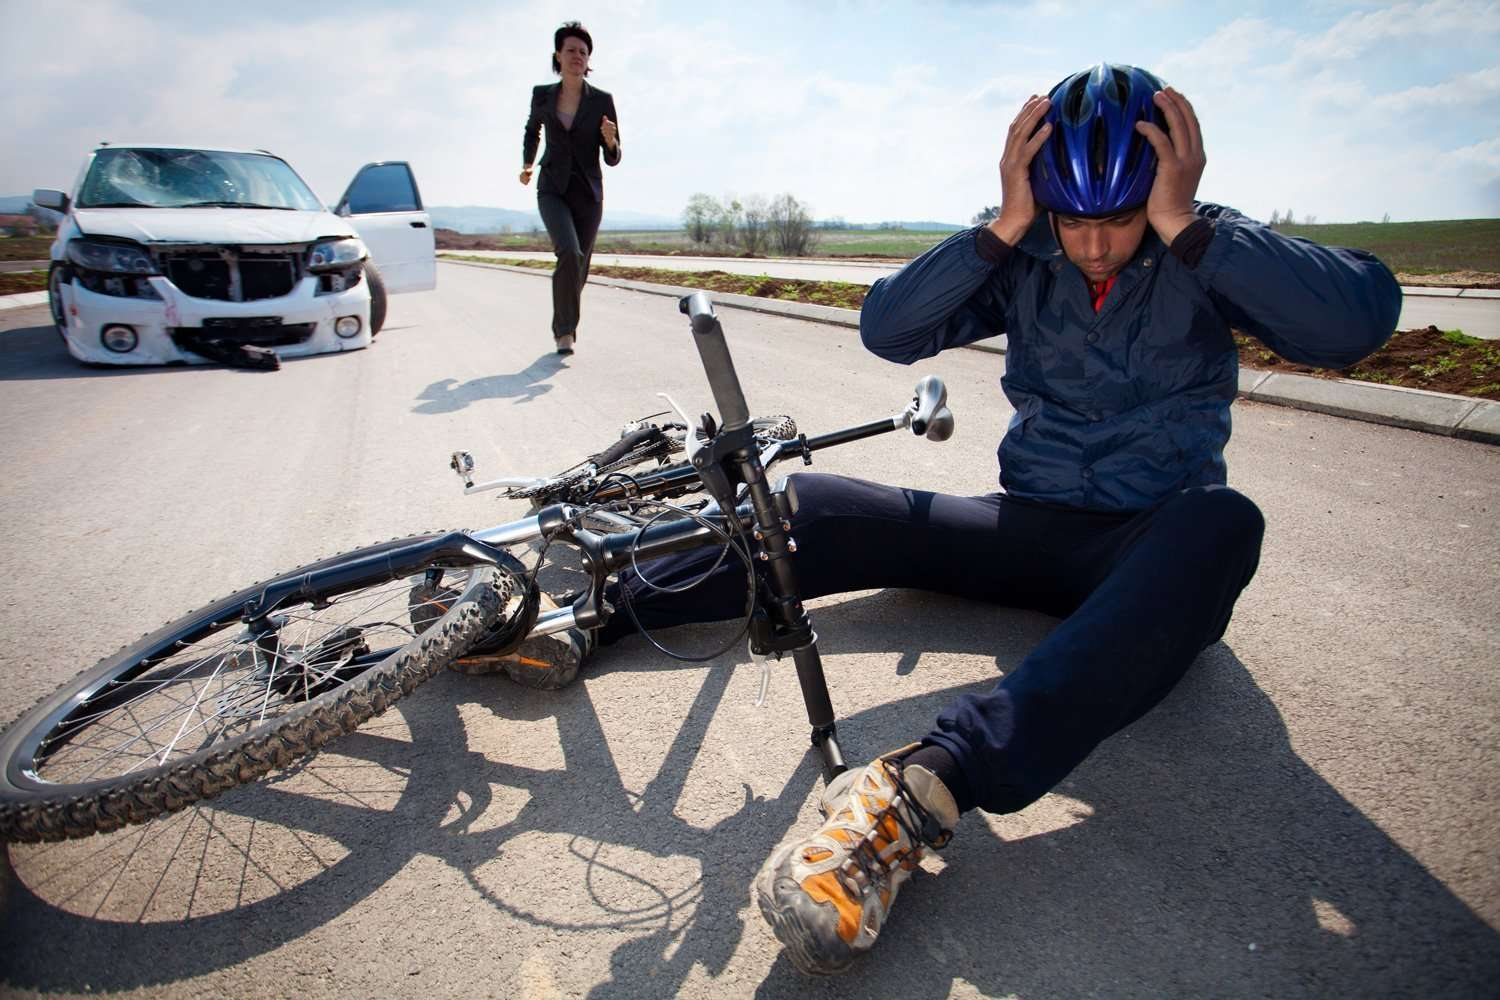 Personal Injury Bicycle rider injured